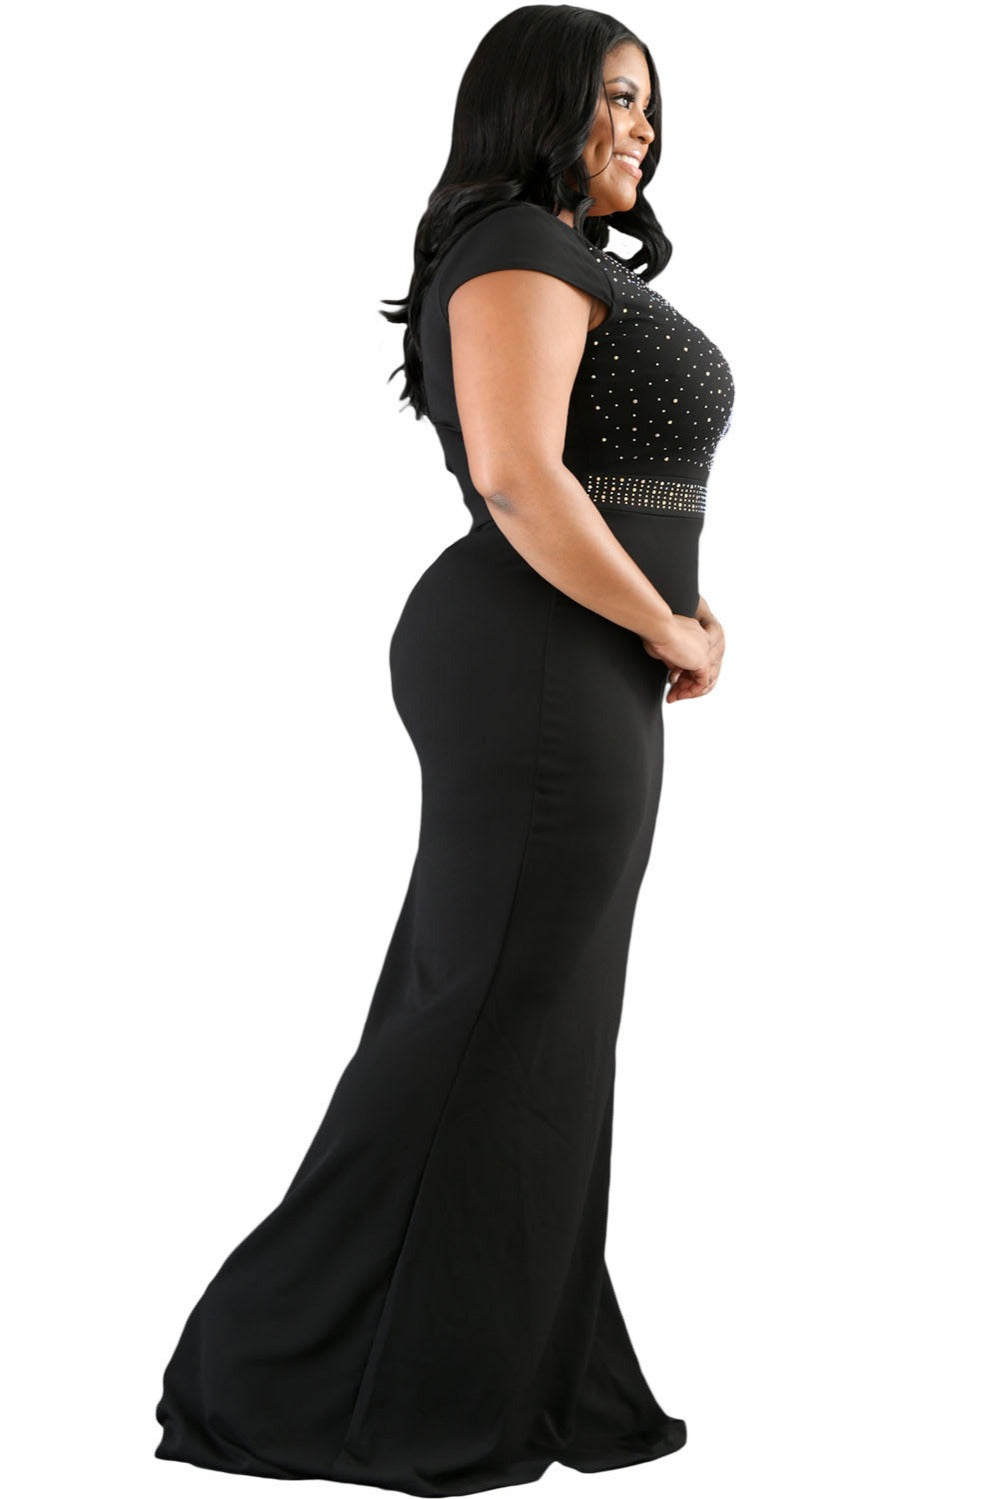 Black Rhinestone Front Detail Scalloped Neckline Plus Dress - Scalloped Bodice Maxi Dress Woven Trends